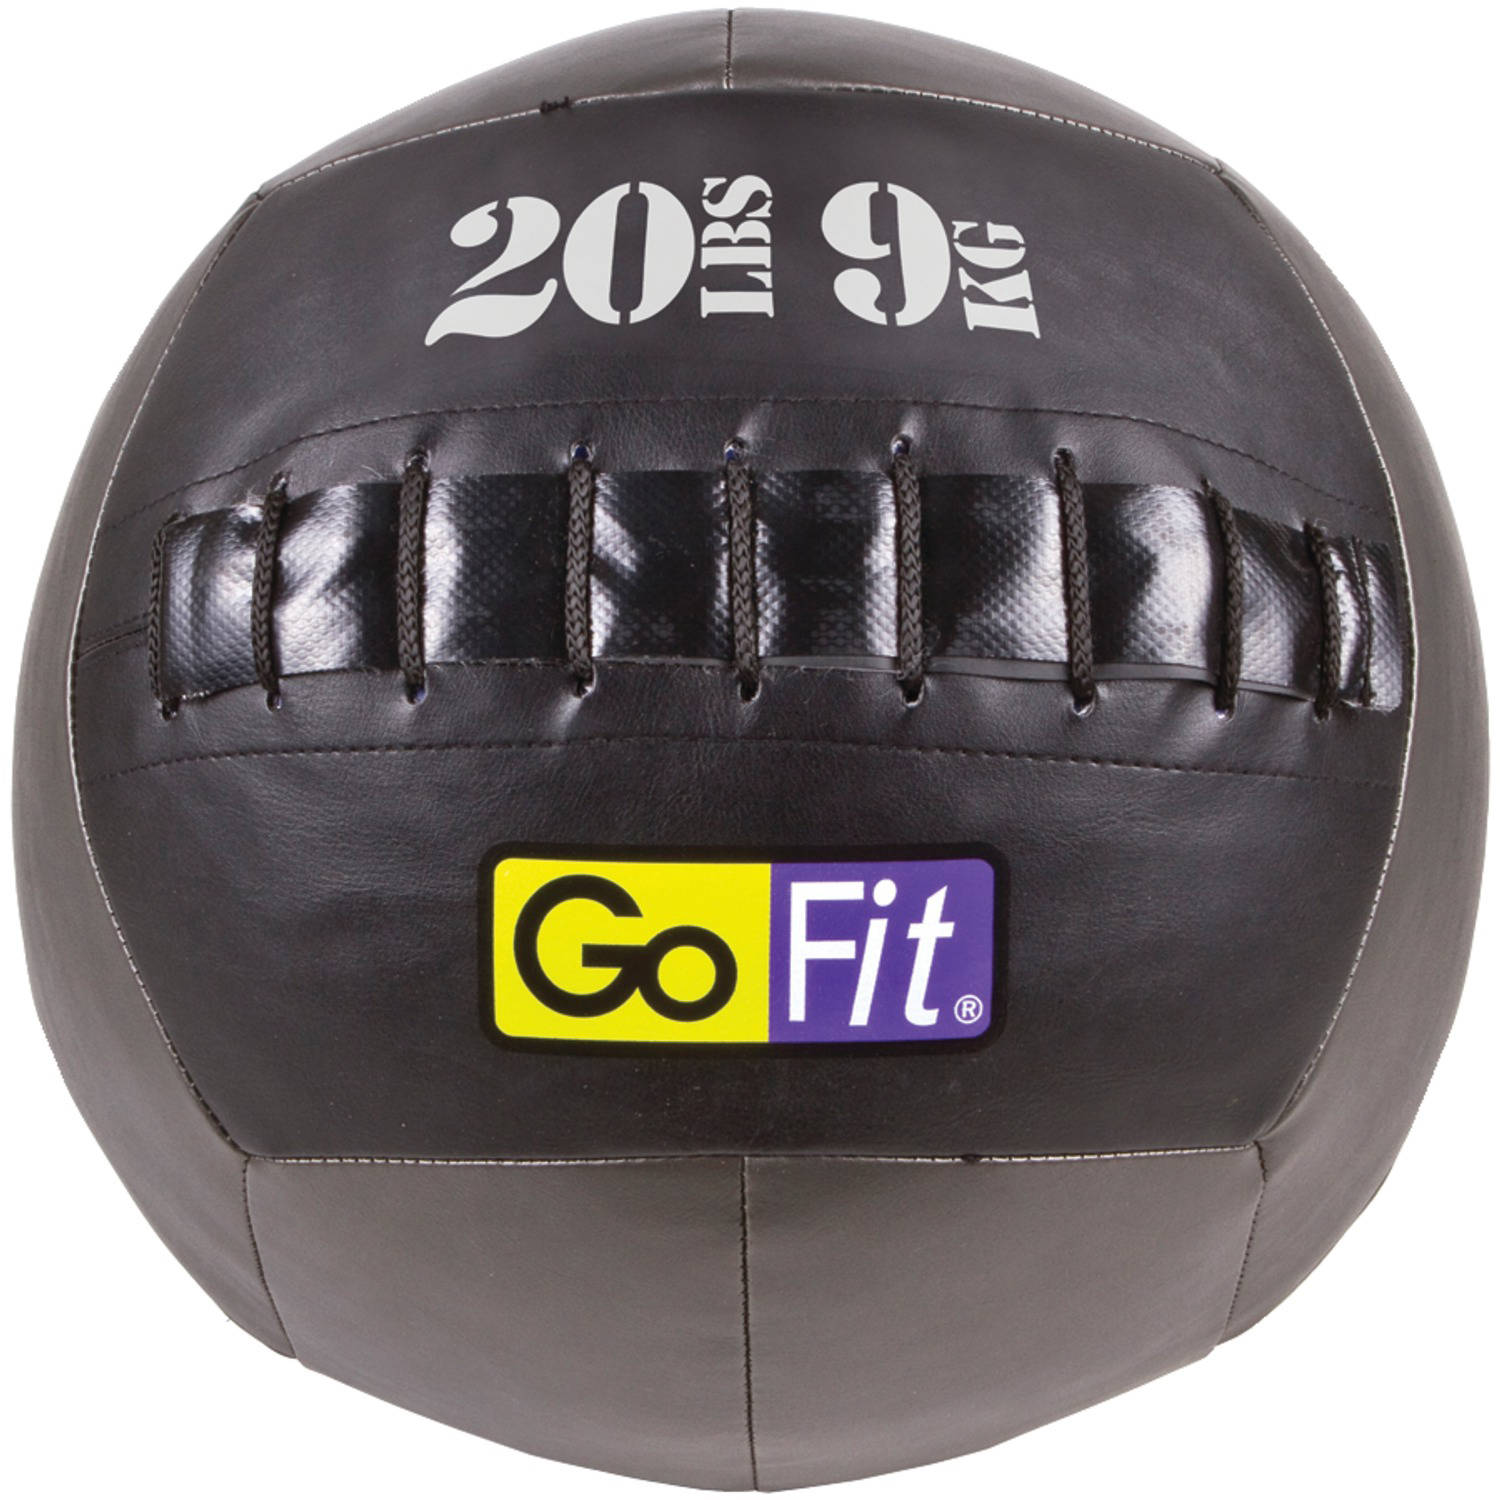 Gofit Gf-Wb20 Wall Ball, 20 Lbs